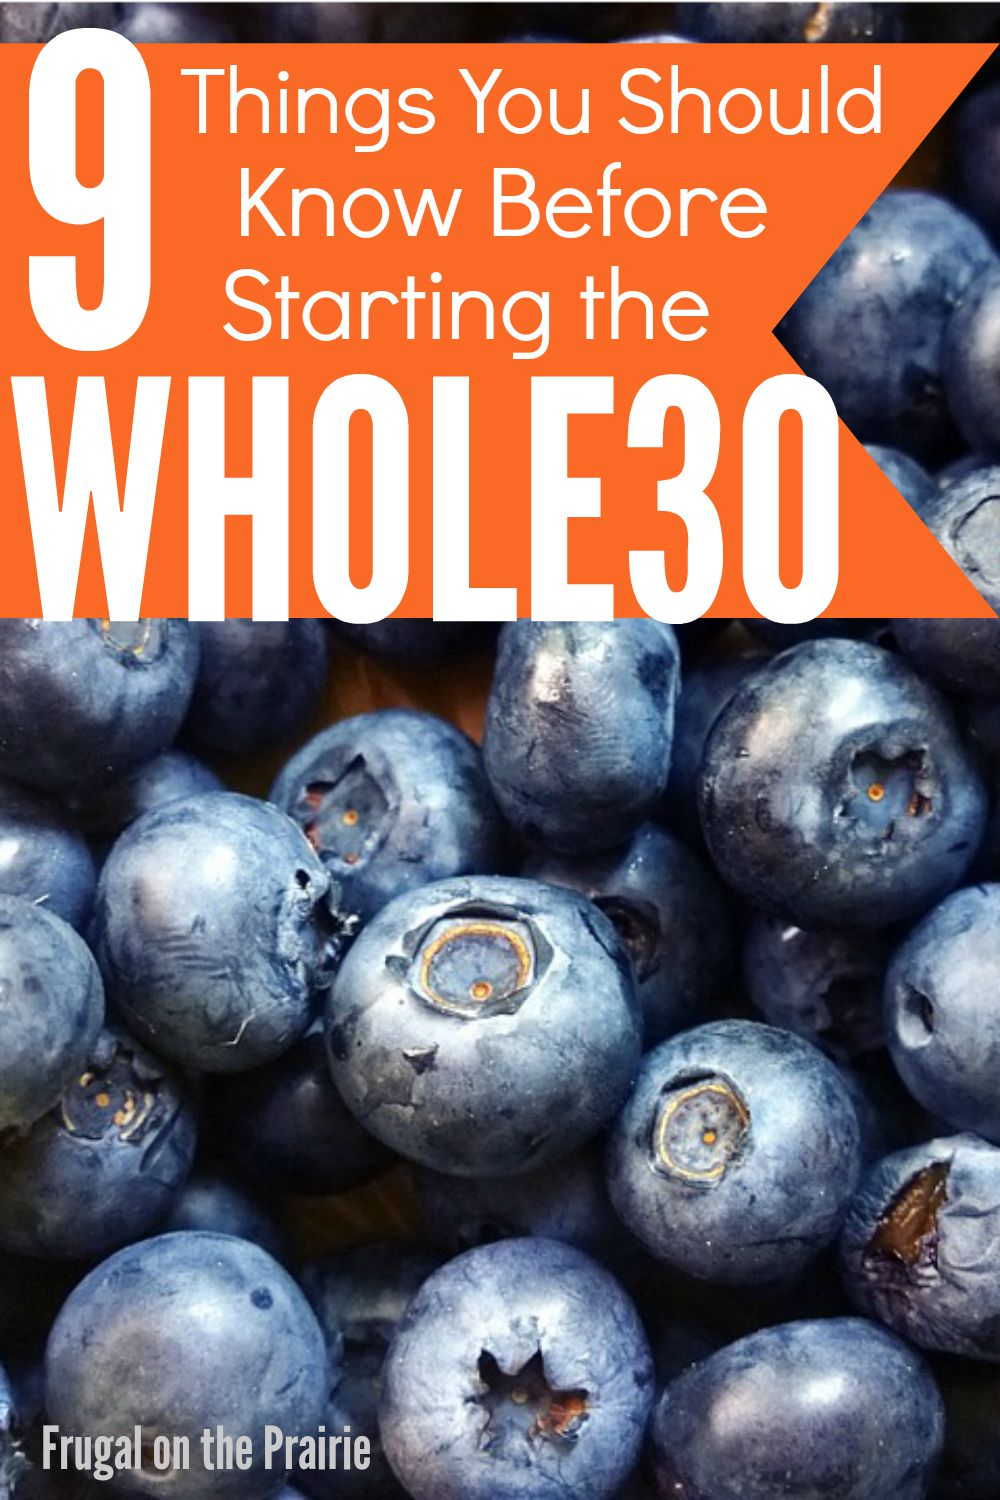 Are you doing the Whole30? I've done the program myself and have a few helpful tips to share. Here are 9 things you should know before you begin.